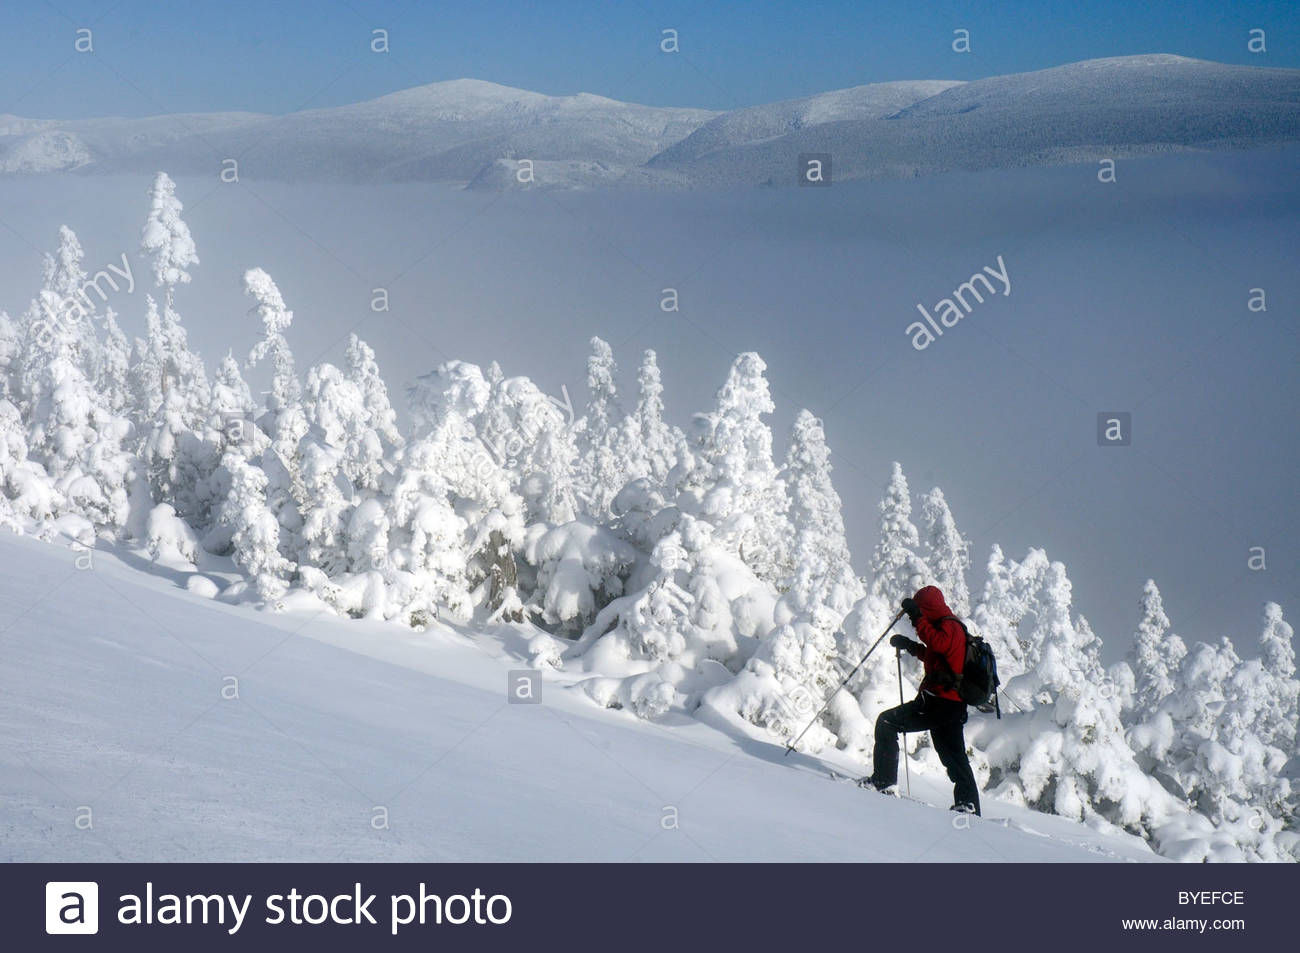 snowshoeing-in-the-chic-chocs-parc-de-la-gaspesie-quebec-canada-in-BYEFCE.jpg